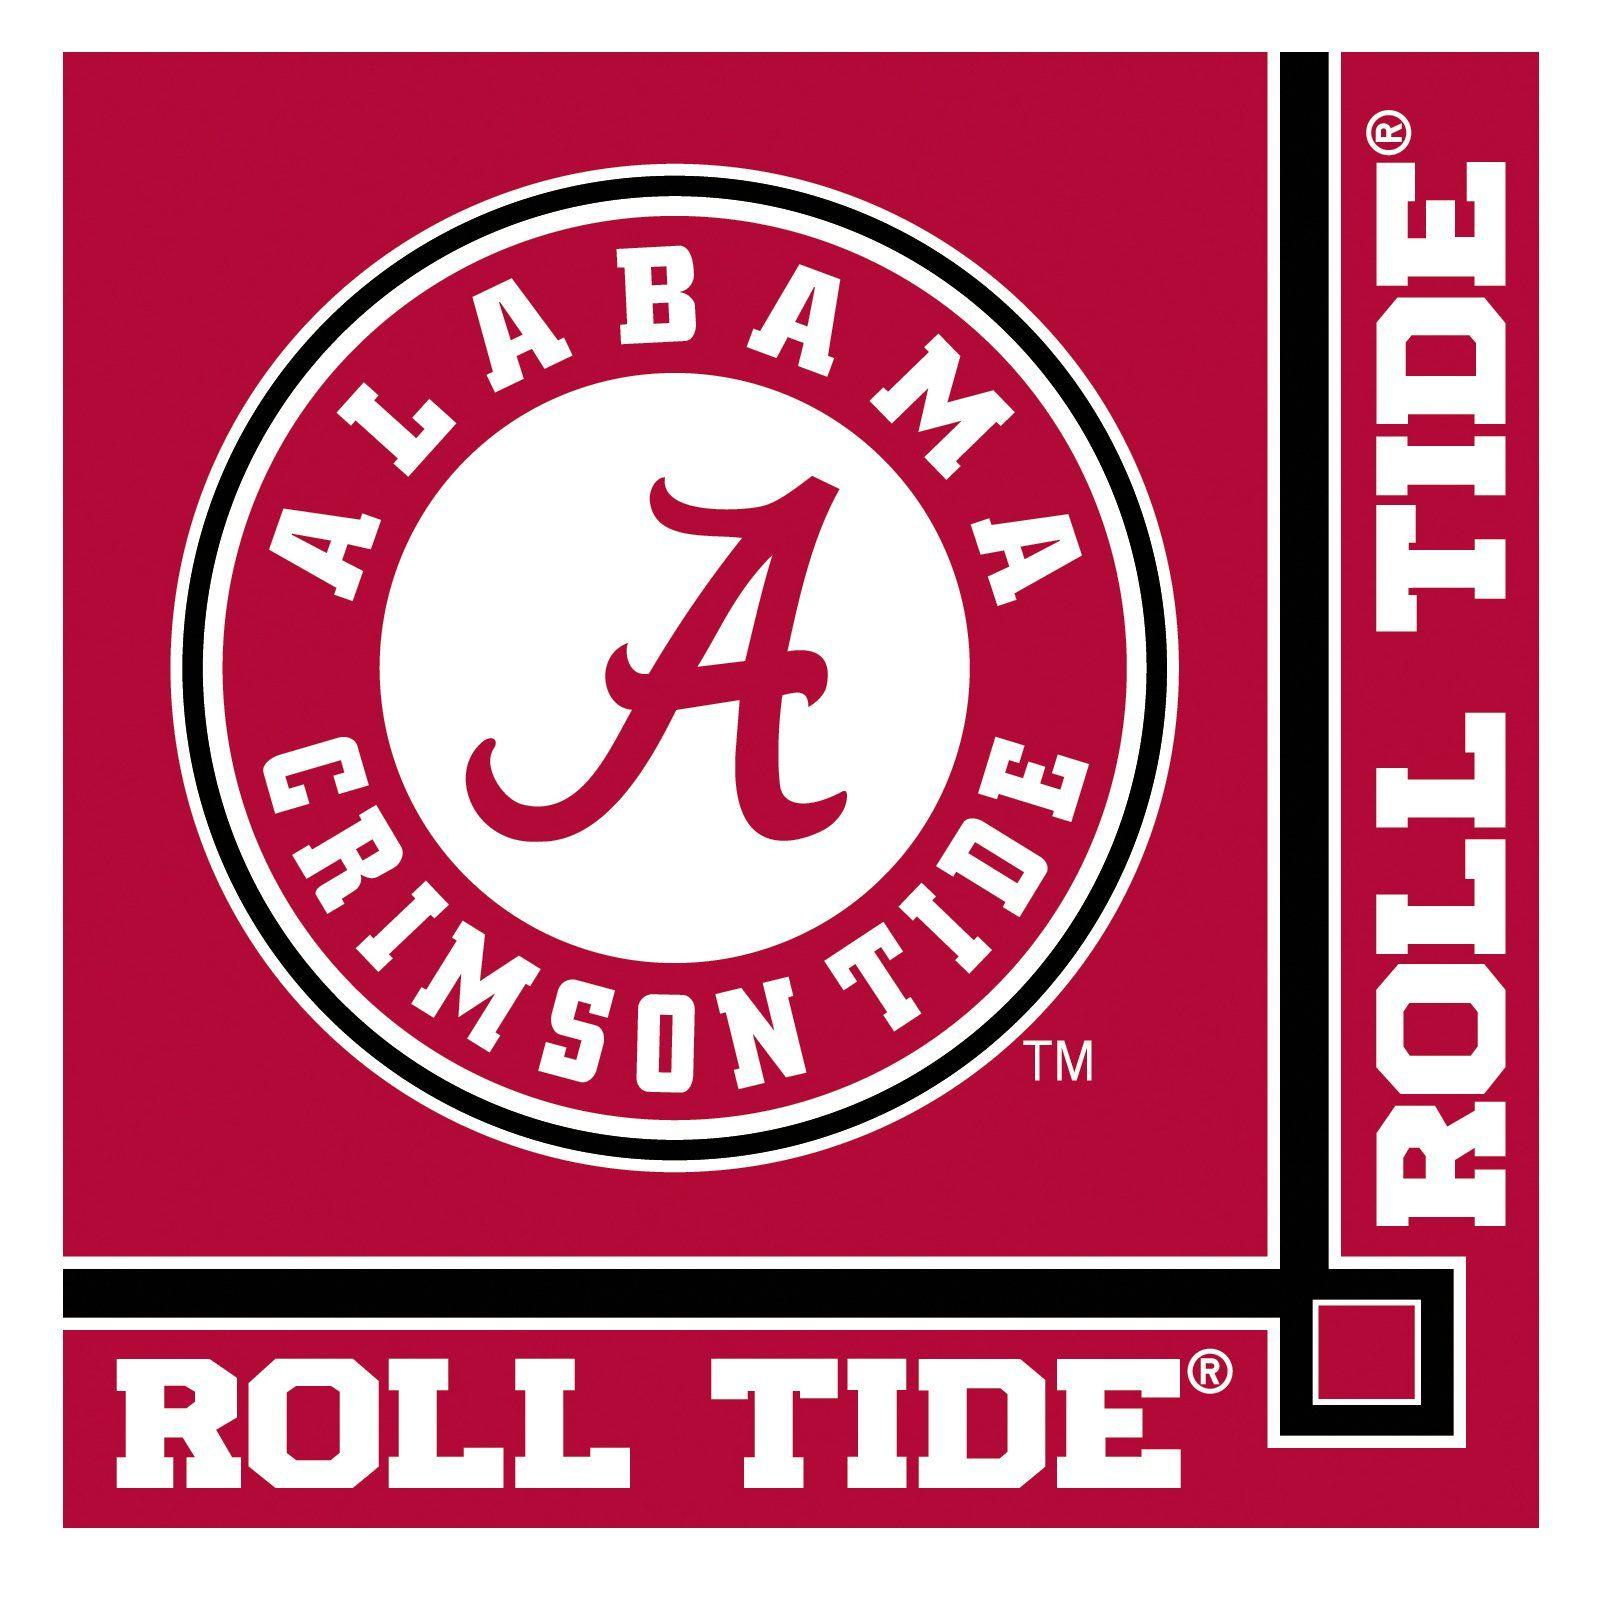 Alabama Crimson Tide Logo On Wood Backgrounds Iphone 4 Wallpapers